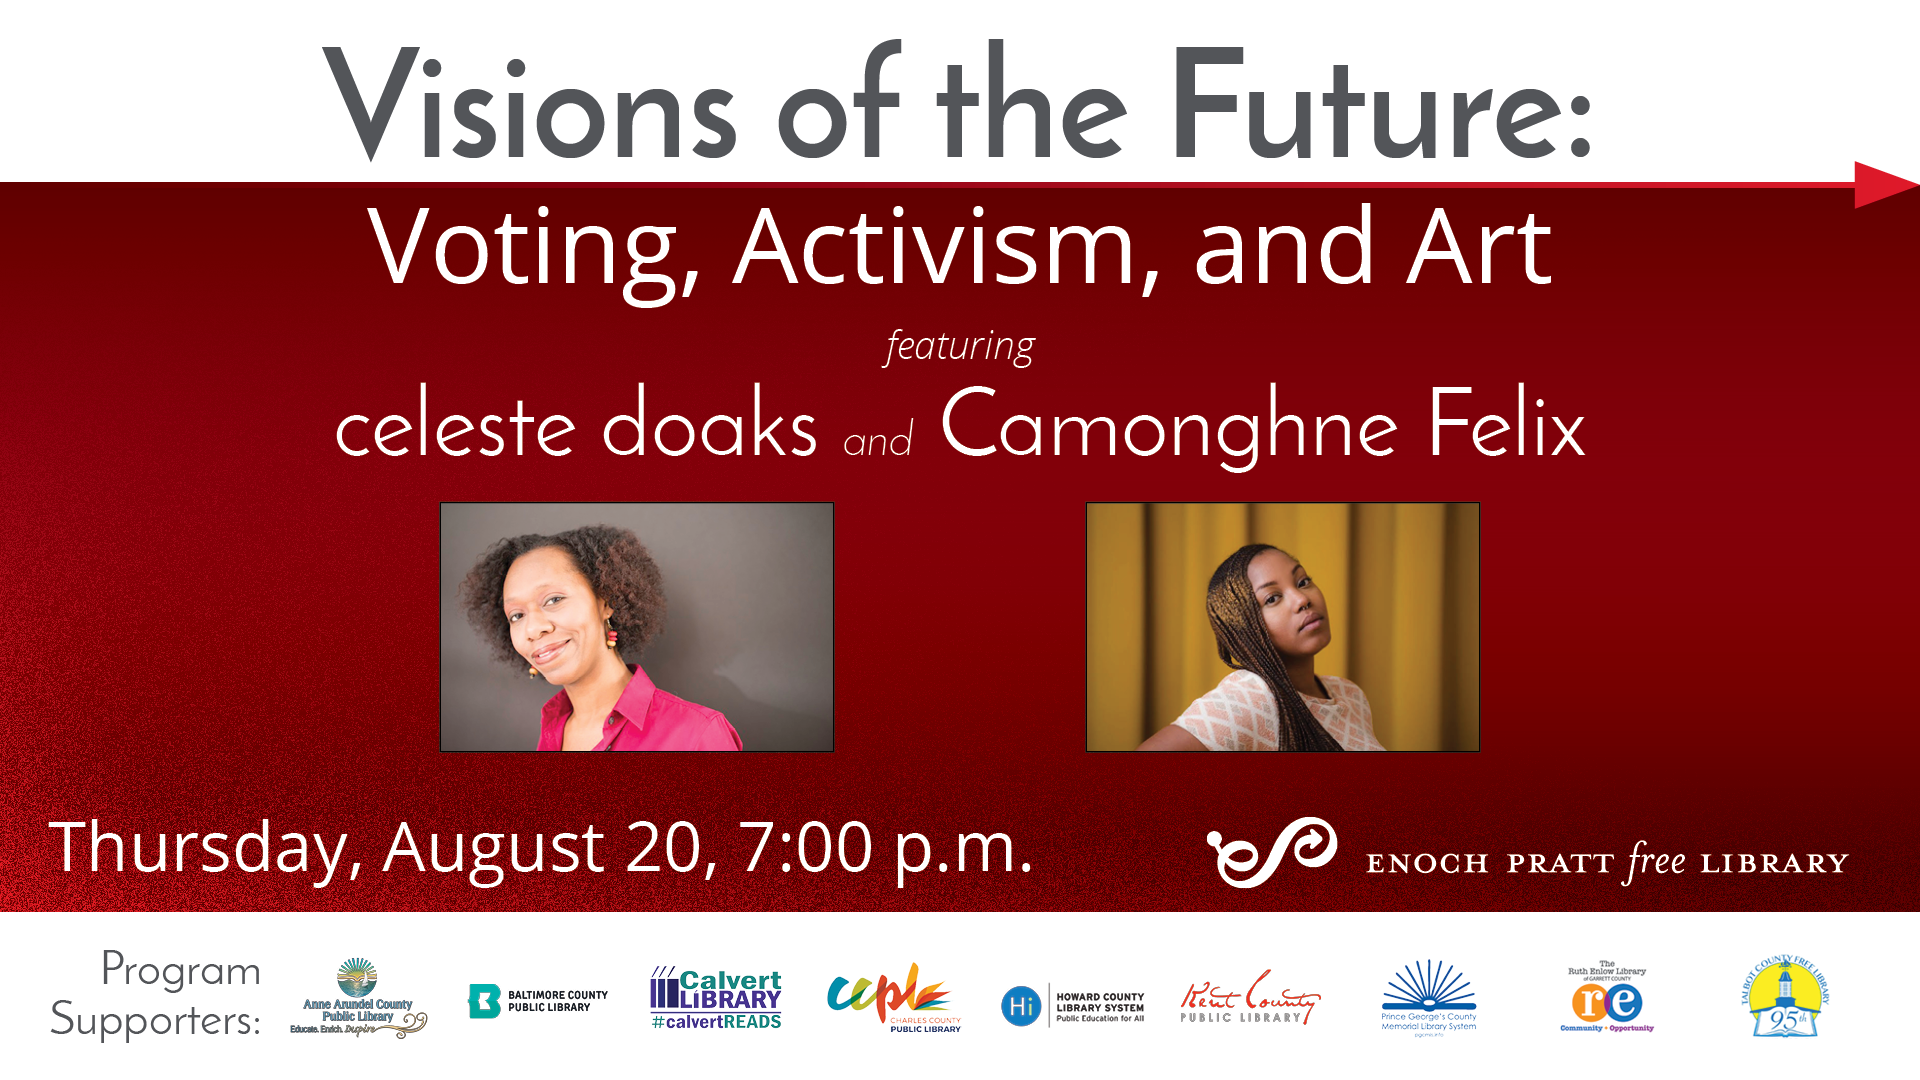 Visions of the Future: Voting, Activism, and Art